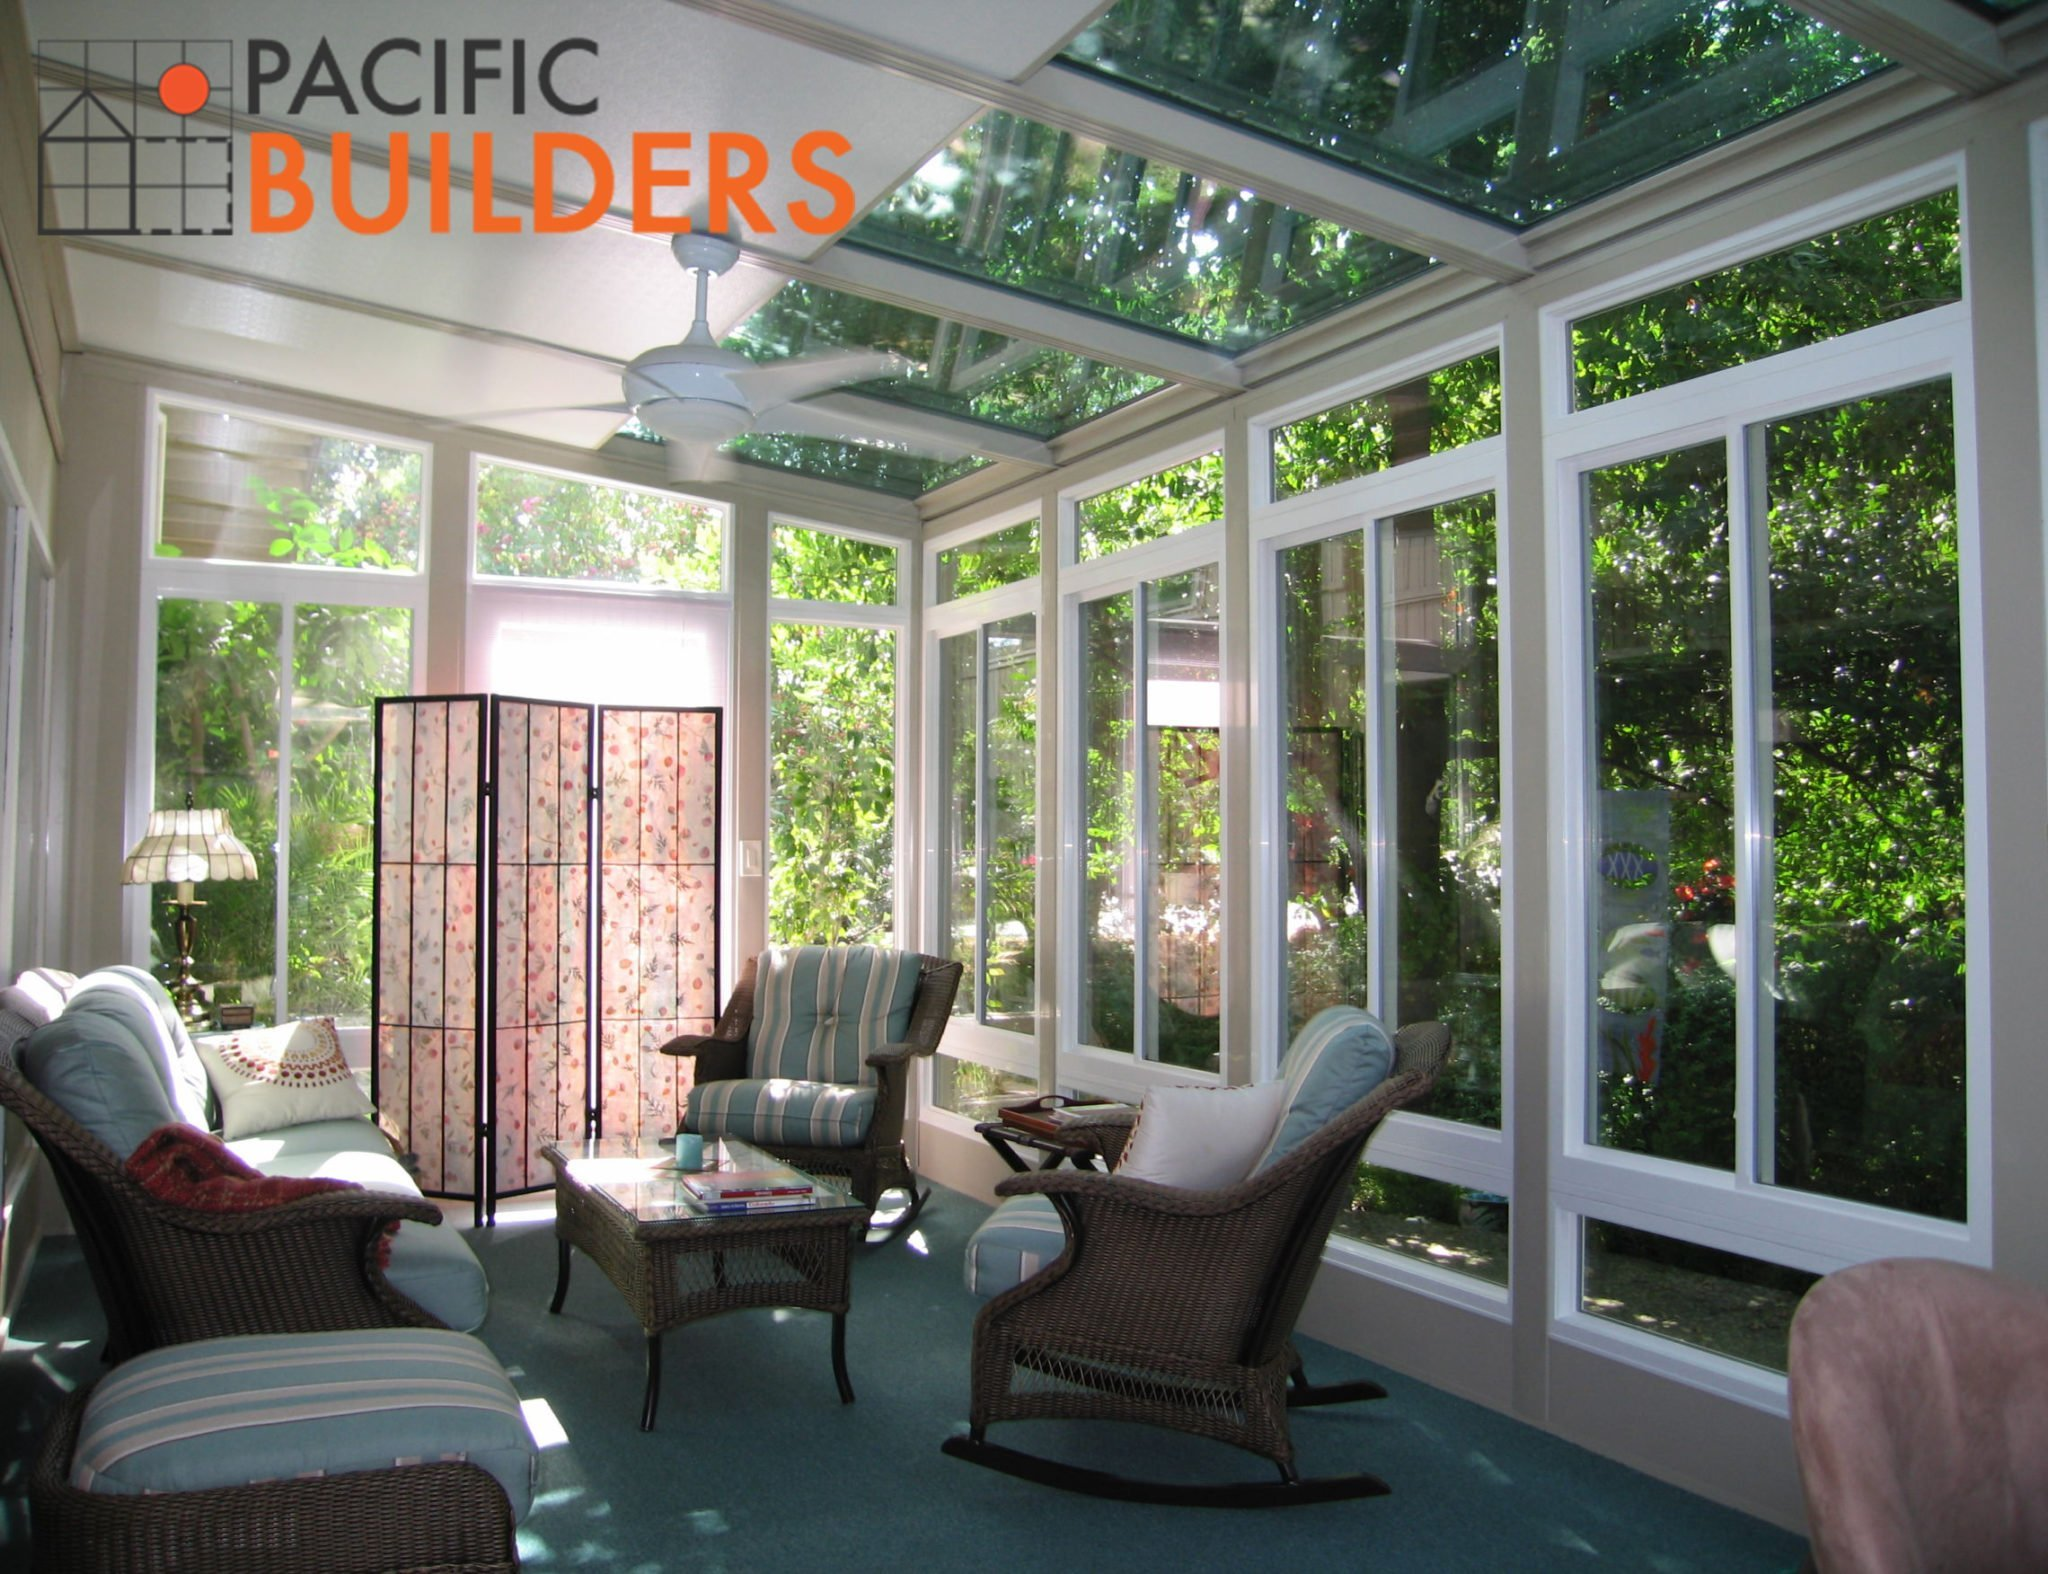 Sunroom Design Ideas - Pacific Builders